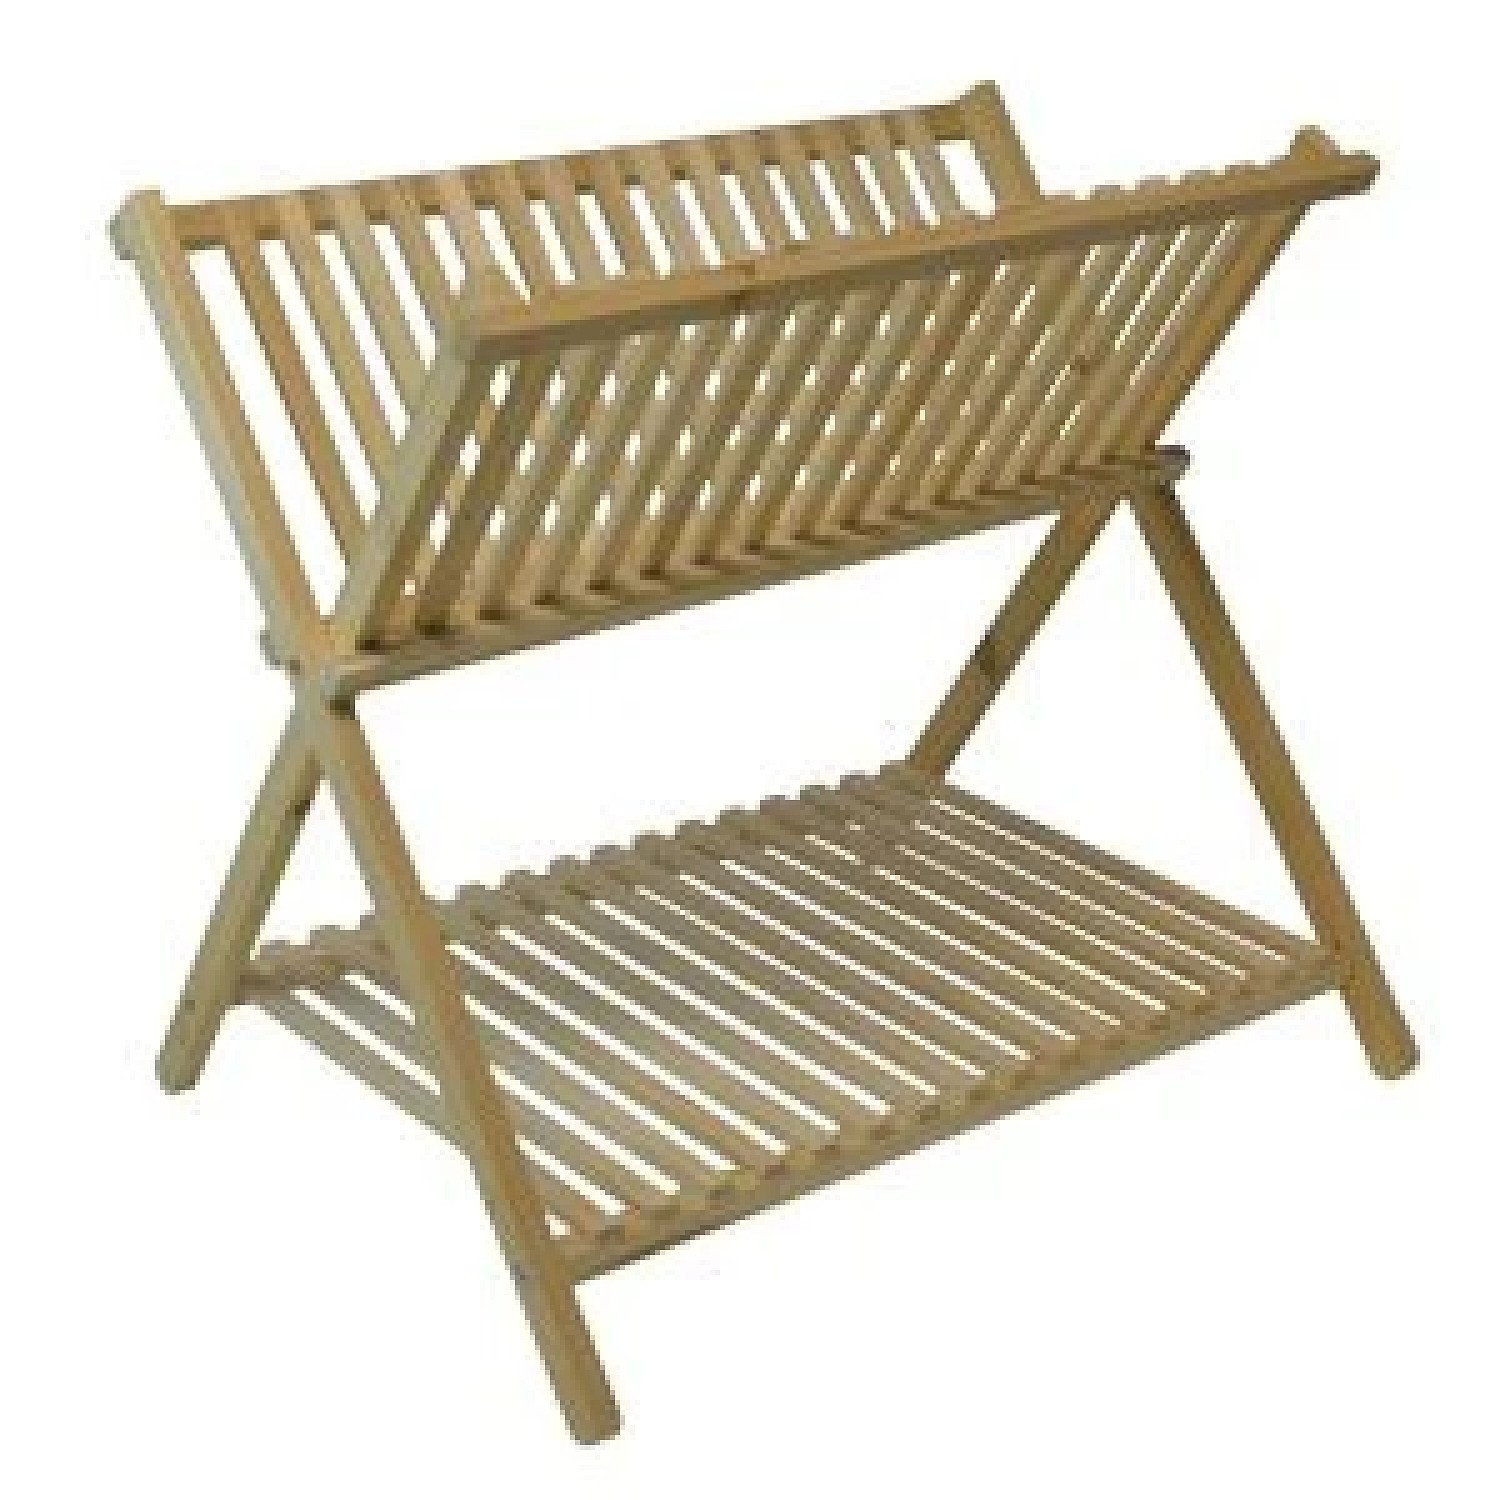 2 Tier Folding Wooden Dish Rack - Natural Colour Free Postage